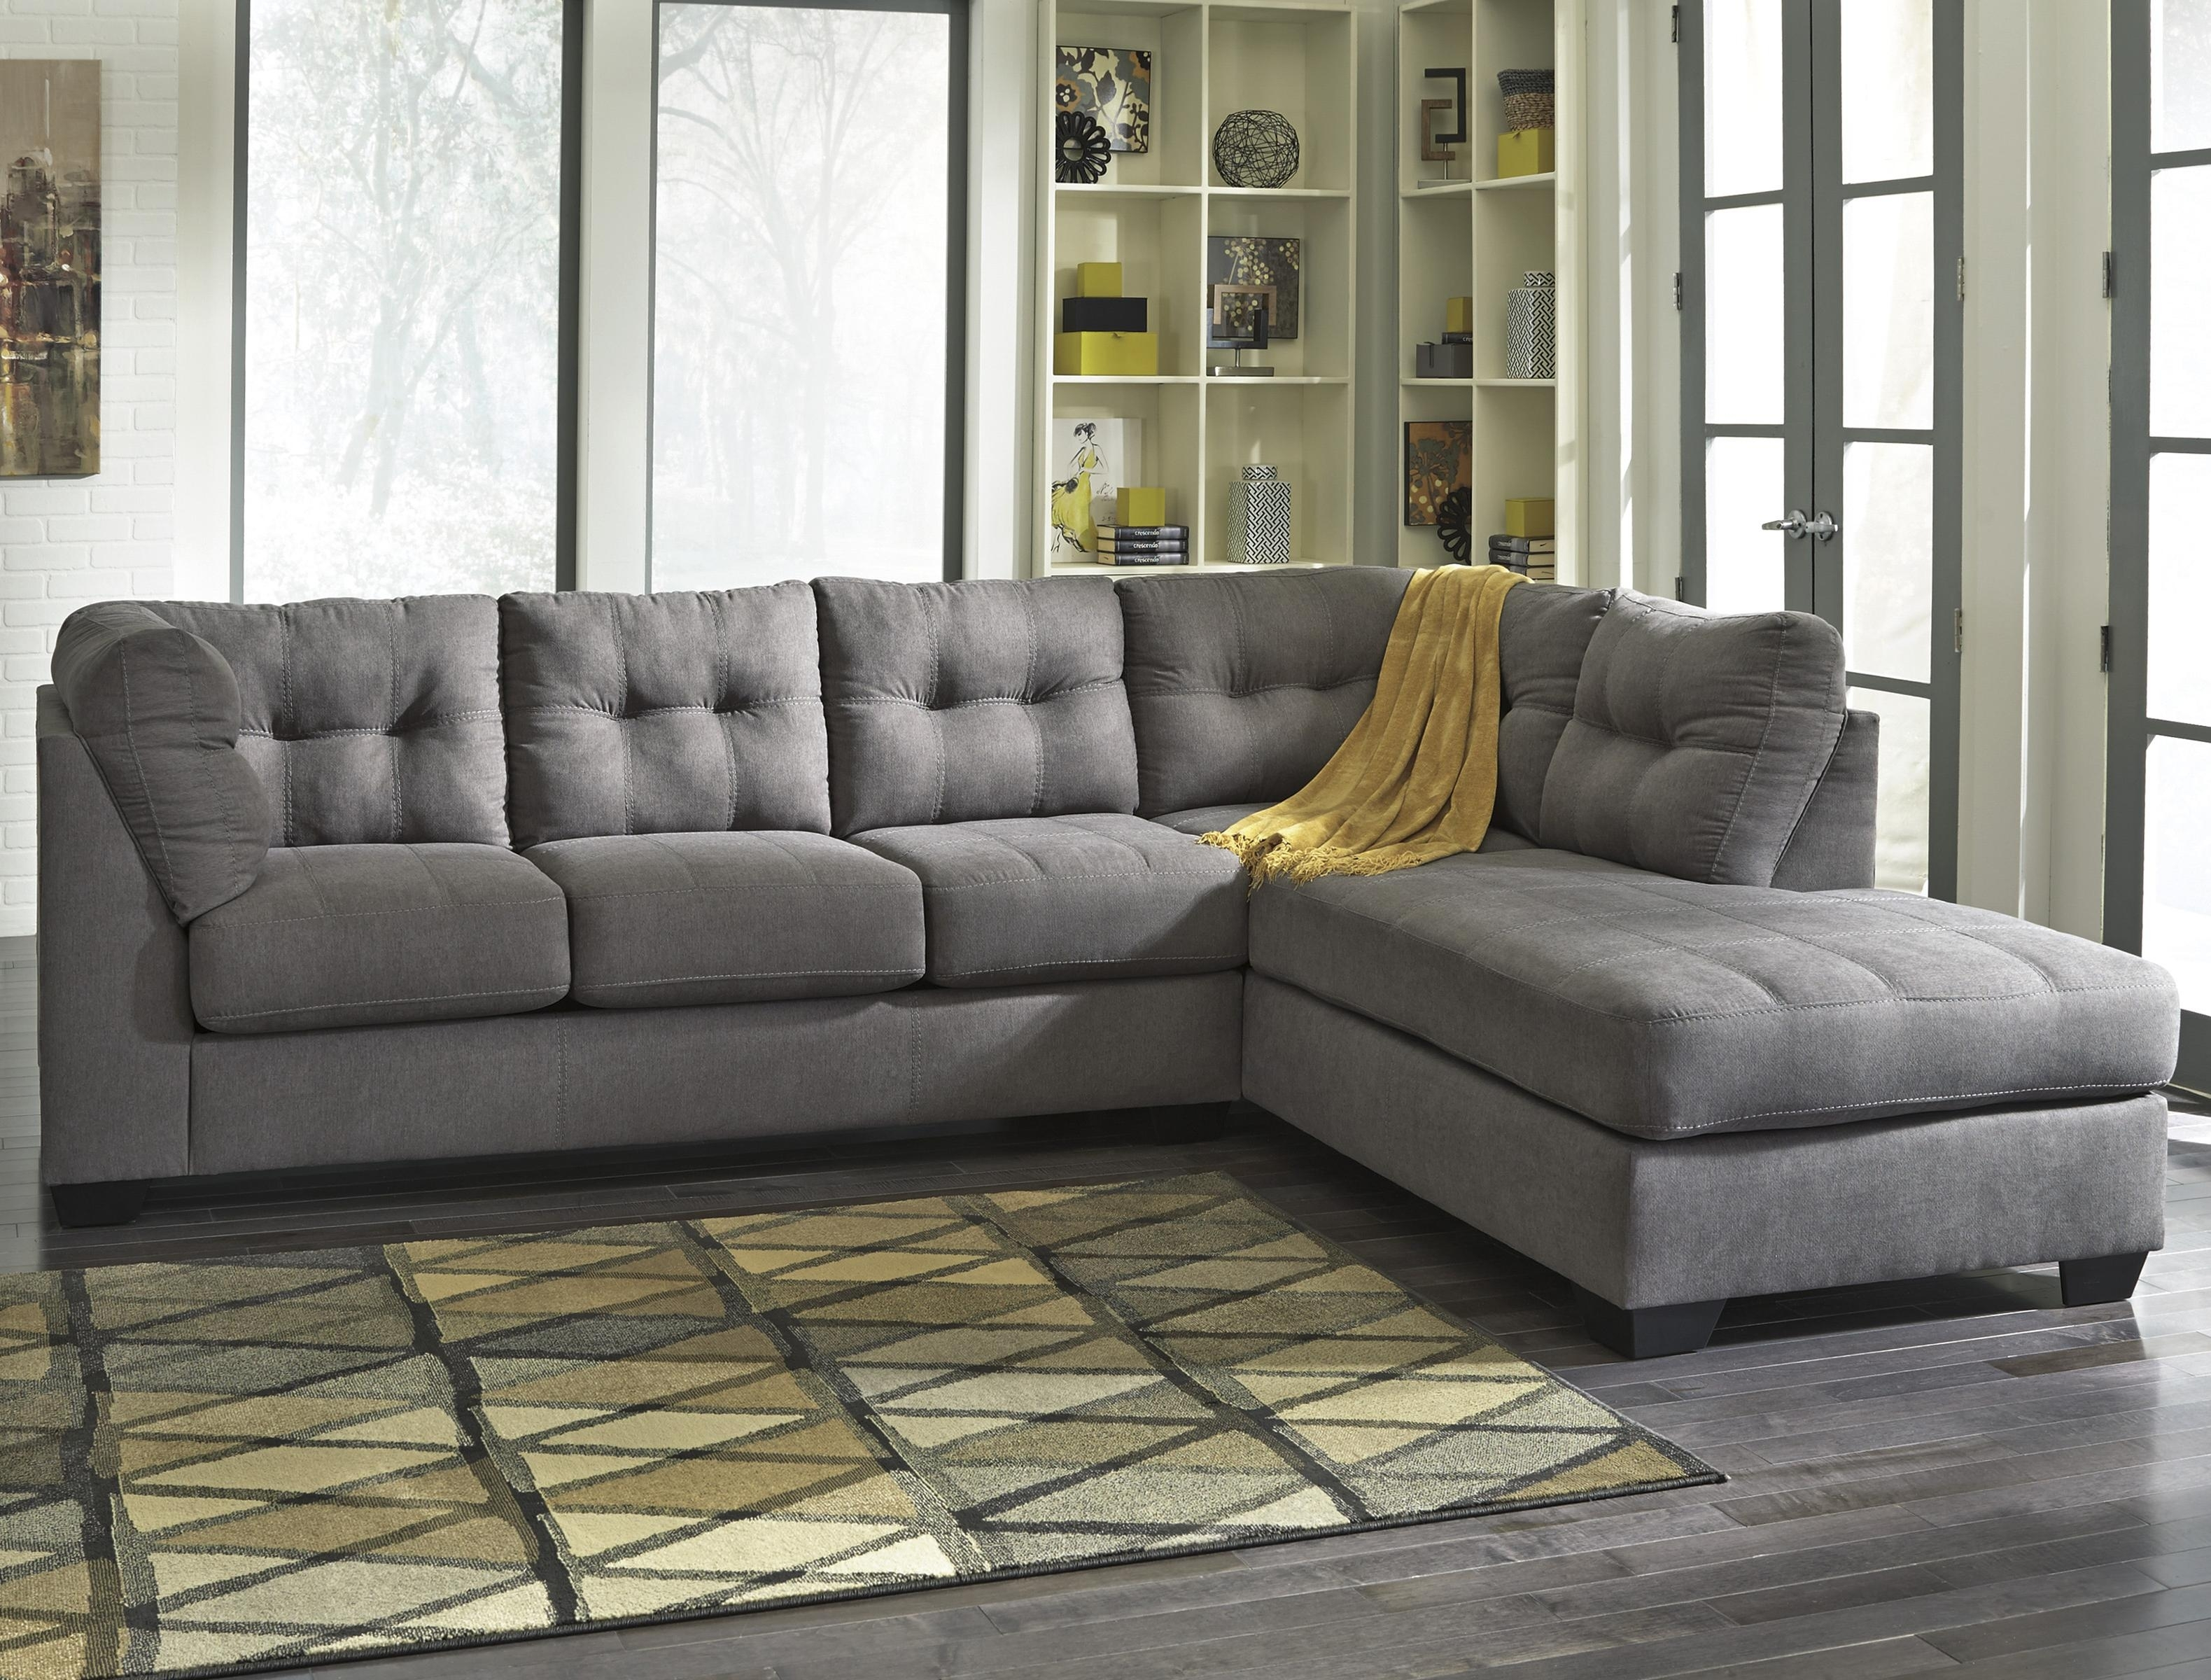 Benchcraft Maier – Charcoal 2 Piece Sectional W/ Sleeper Sofa For Arrowmask 2 Piece Sectionals With Laf Chaise (Image 6 of 25)